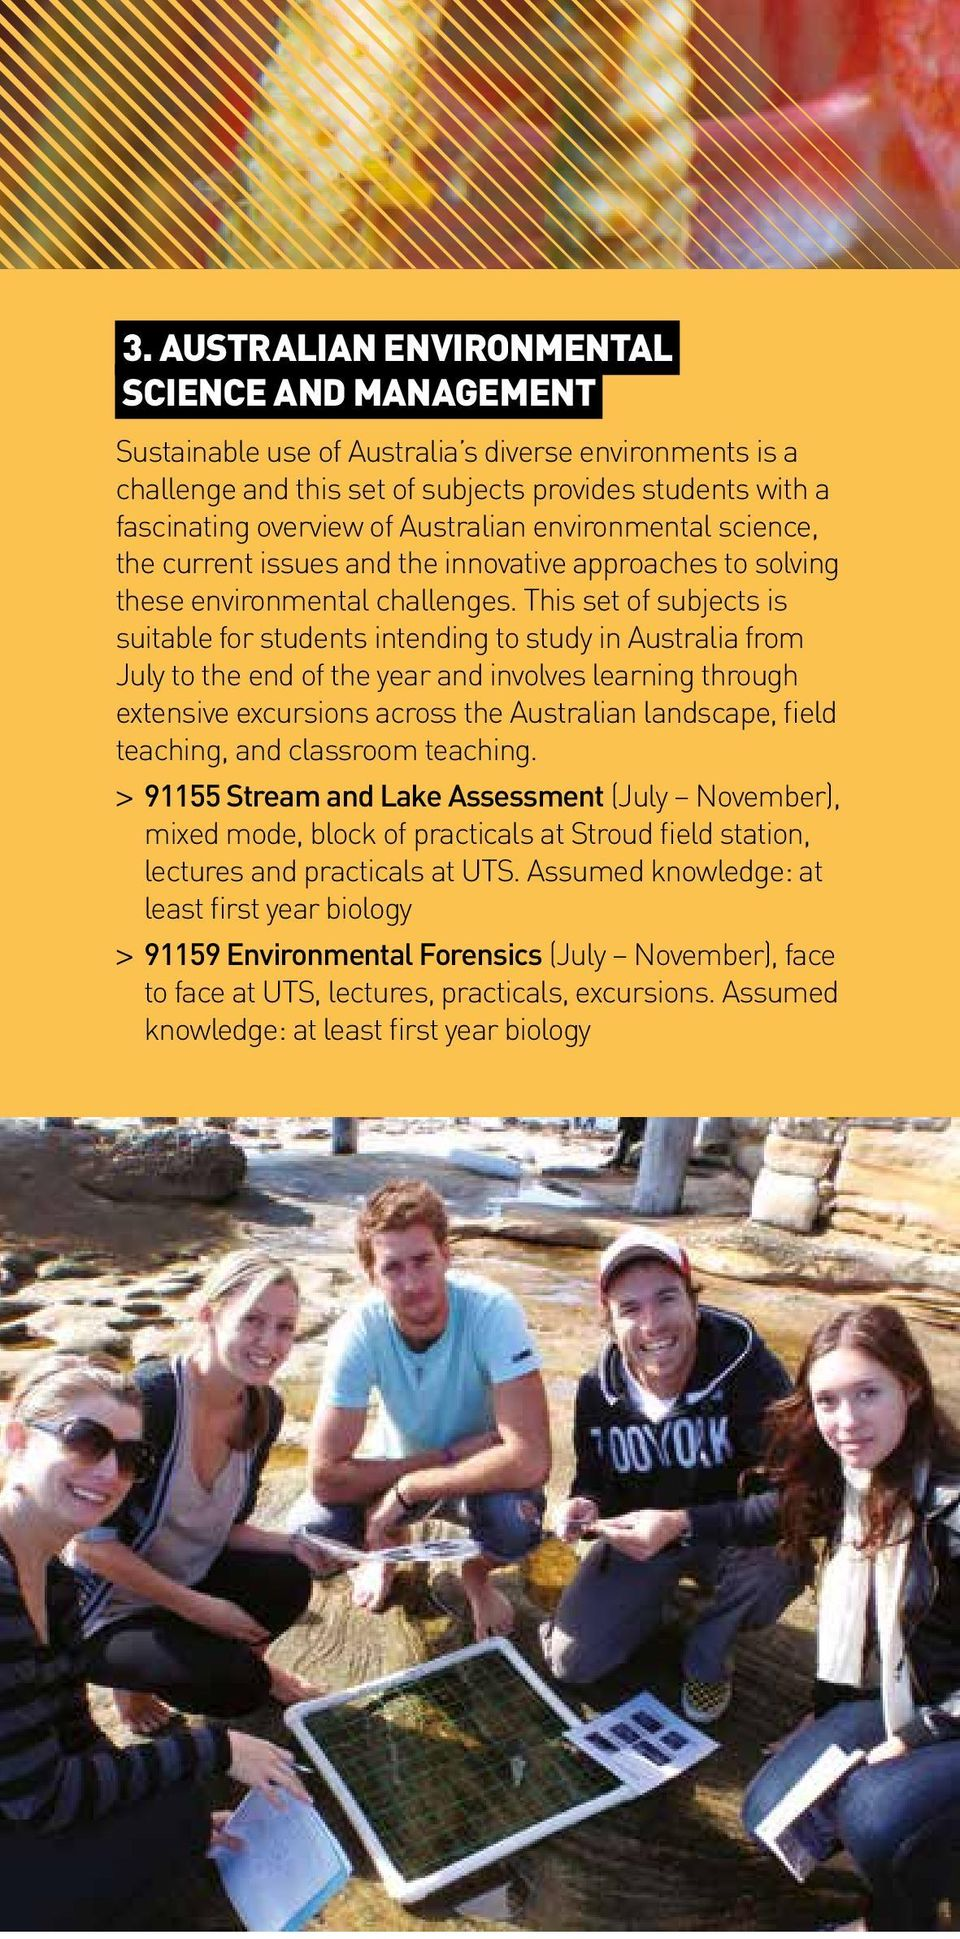 This set of subjects is suitable for students intending to study in Australia from July to the end of the year and involves learning through extensive excursions across the Australian landscape,